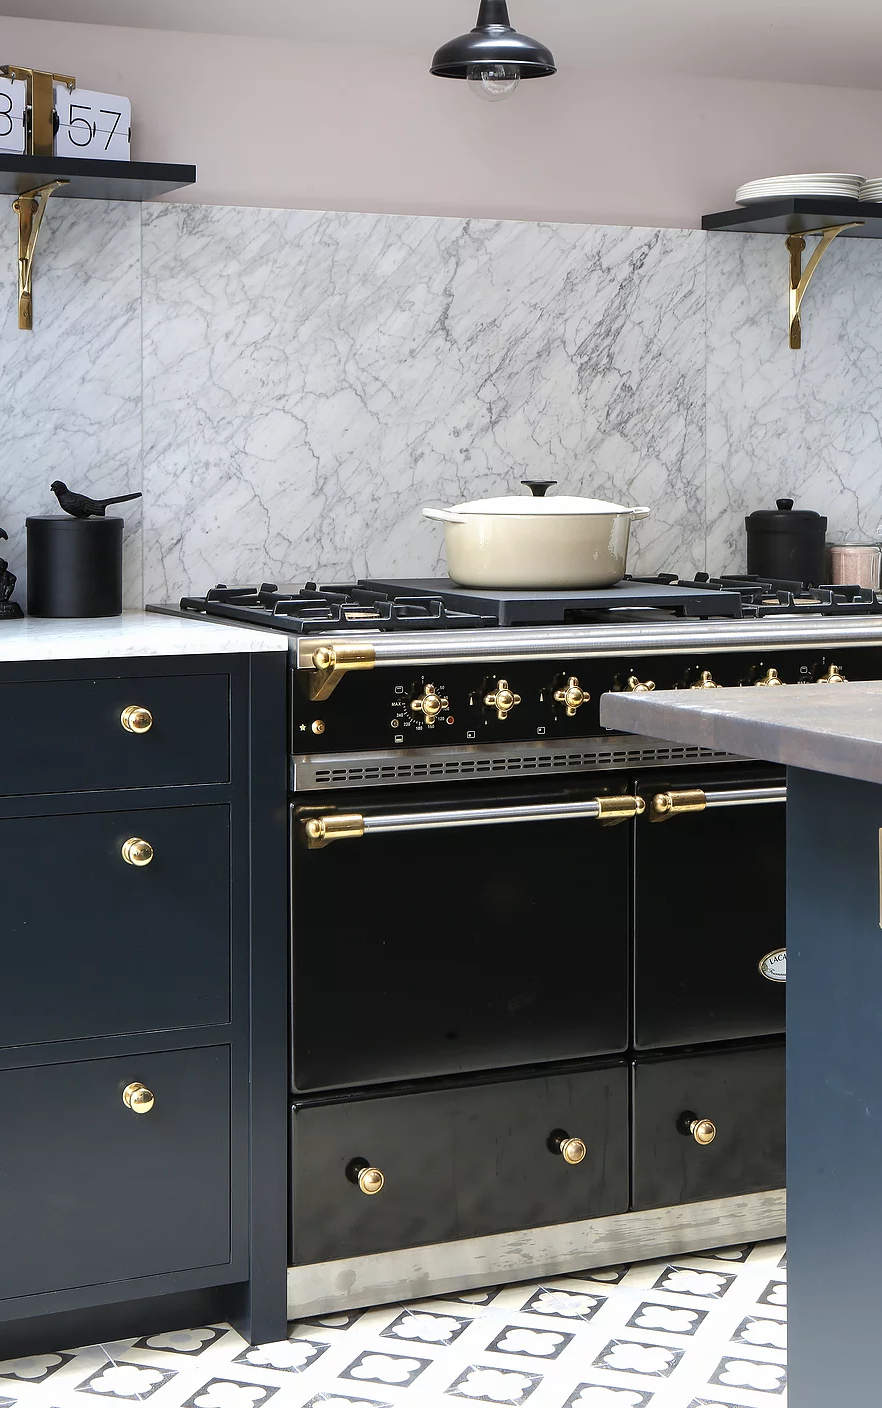 Amazing Kitchen Design With Touches Of Gold 7